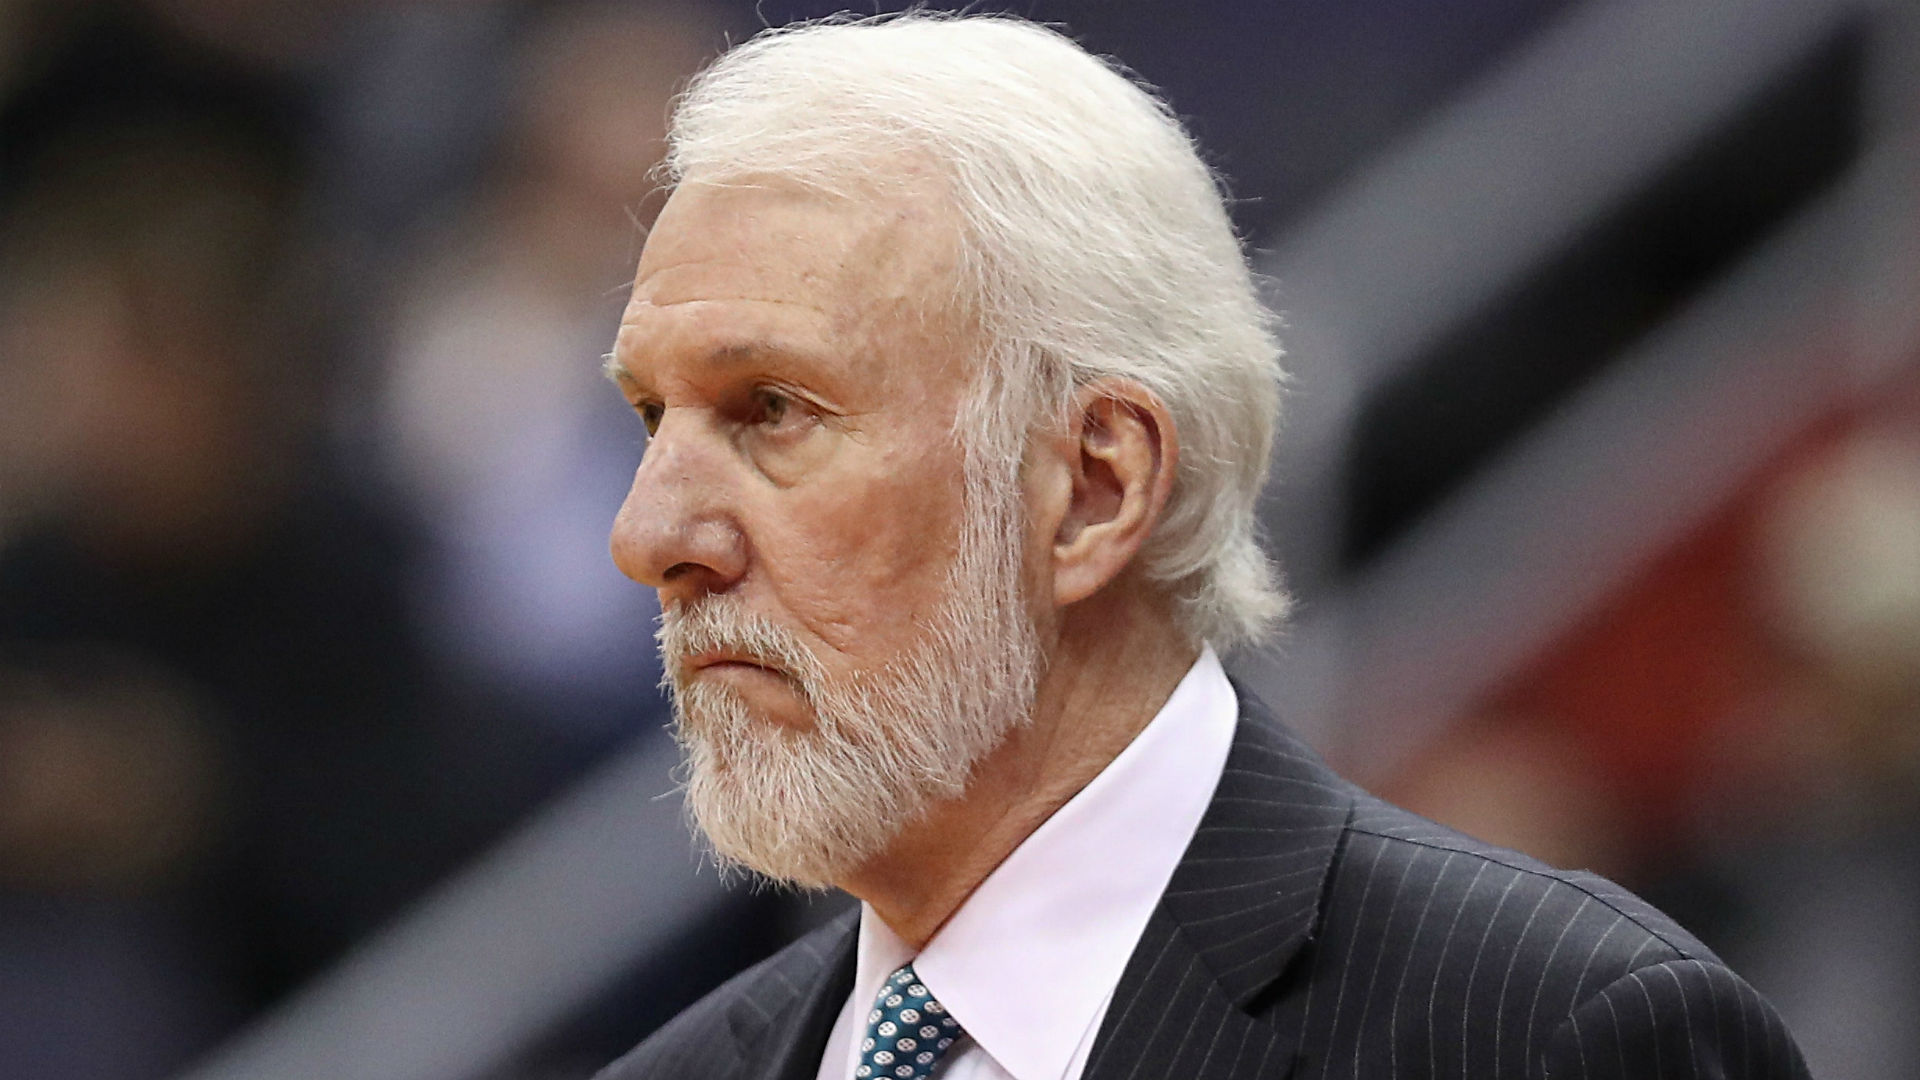 Gregg Popovich S Words On Racial Inequality White Privilege Will Fire Up All Sides Nba Sporting News